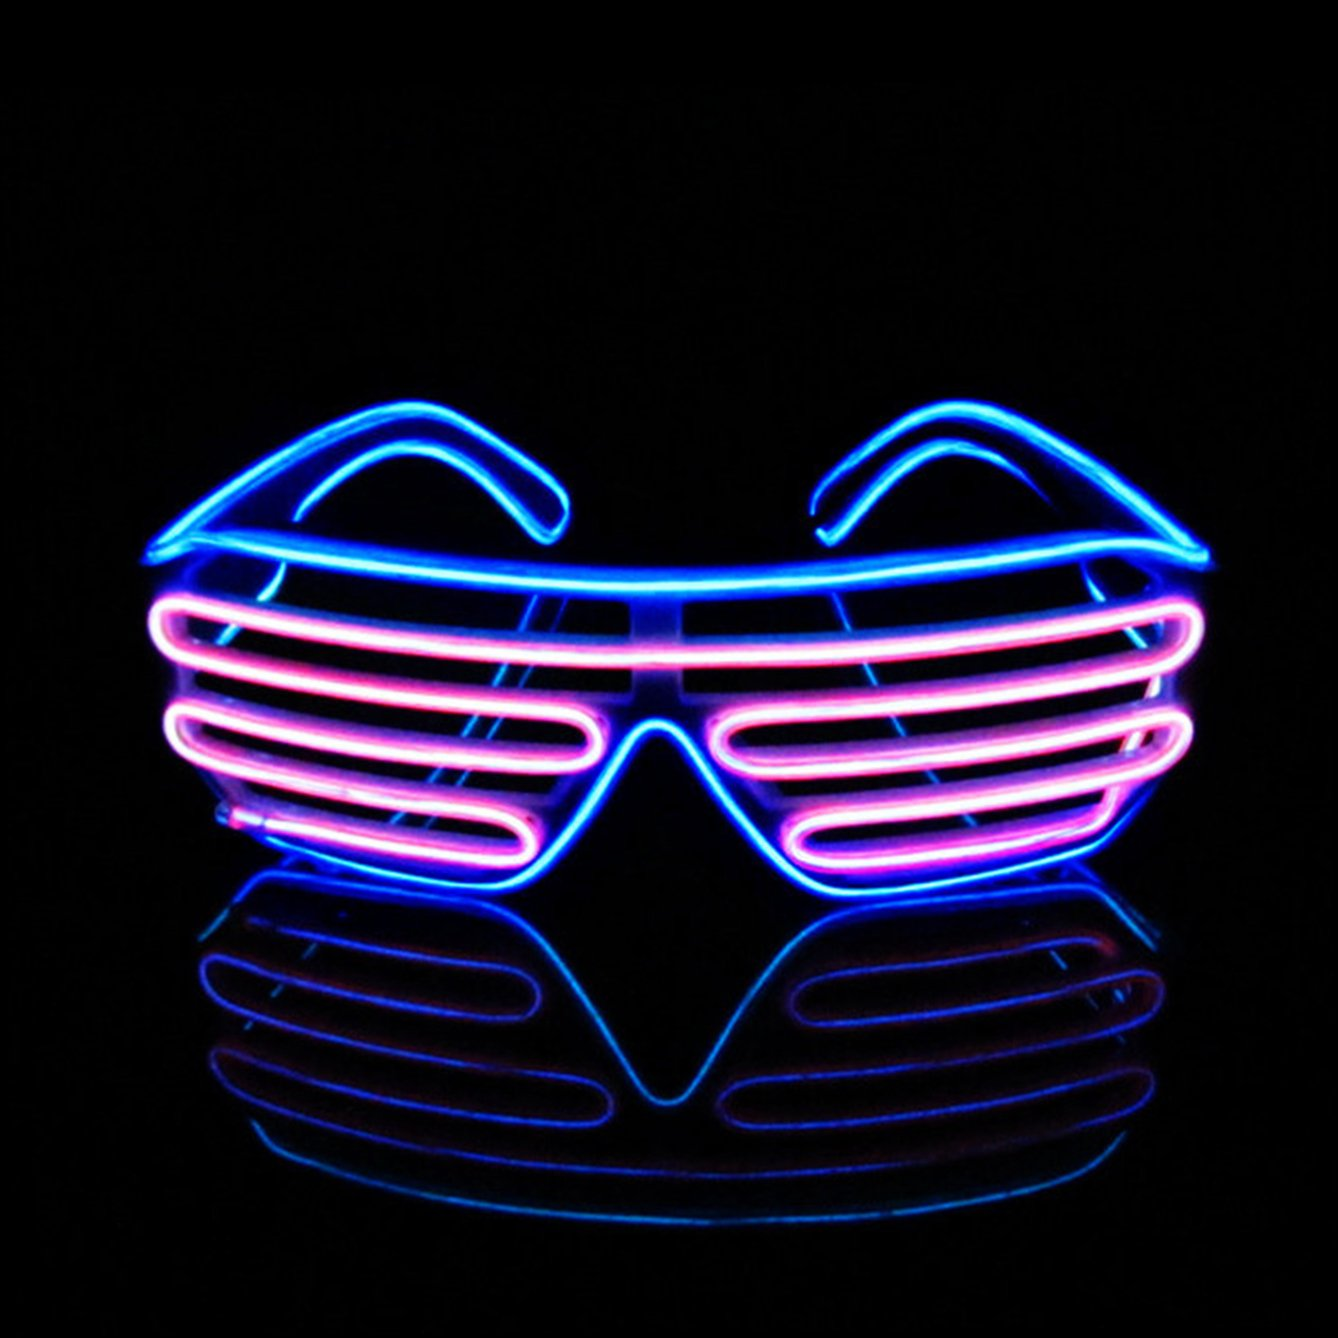 Pinfox Light Up Flashing Shutter Neon Rave Glasses El Wire LED Sunglasses Glow DJ Costumes For Party, 80s, EDM RB03 (Blue + Pink)